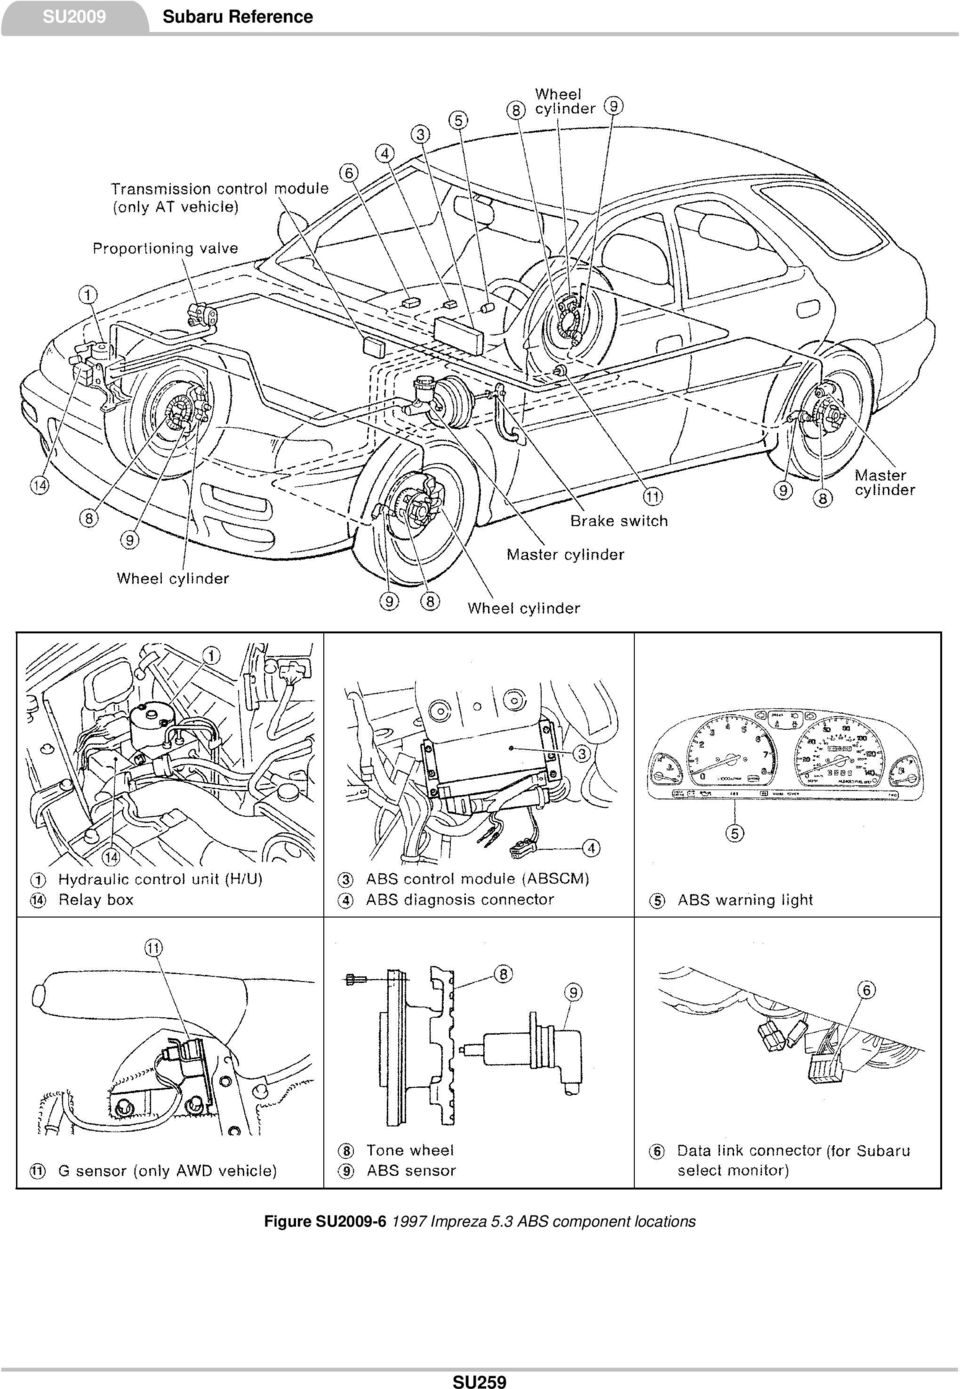 subaru reference  this reference contains the following information  connector pinouts